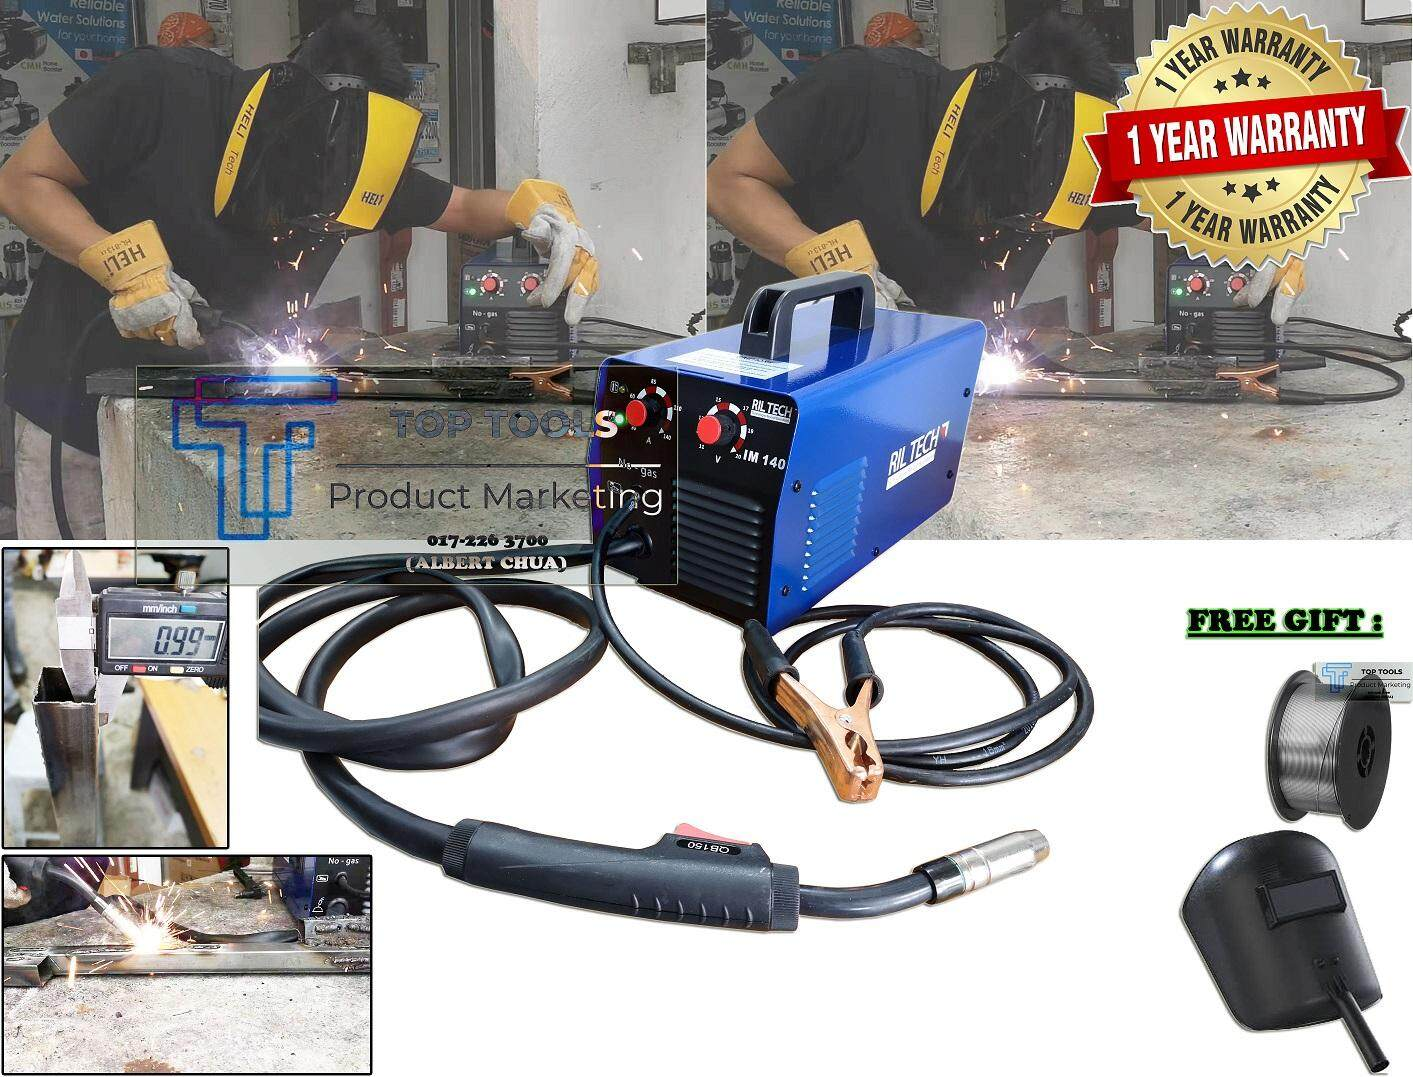 RILTECH Gasless Mig Welding Machine IM140 Free 1 Roll Gasless Wire (Sesuai Besi Lipis) (Holo 1mm)